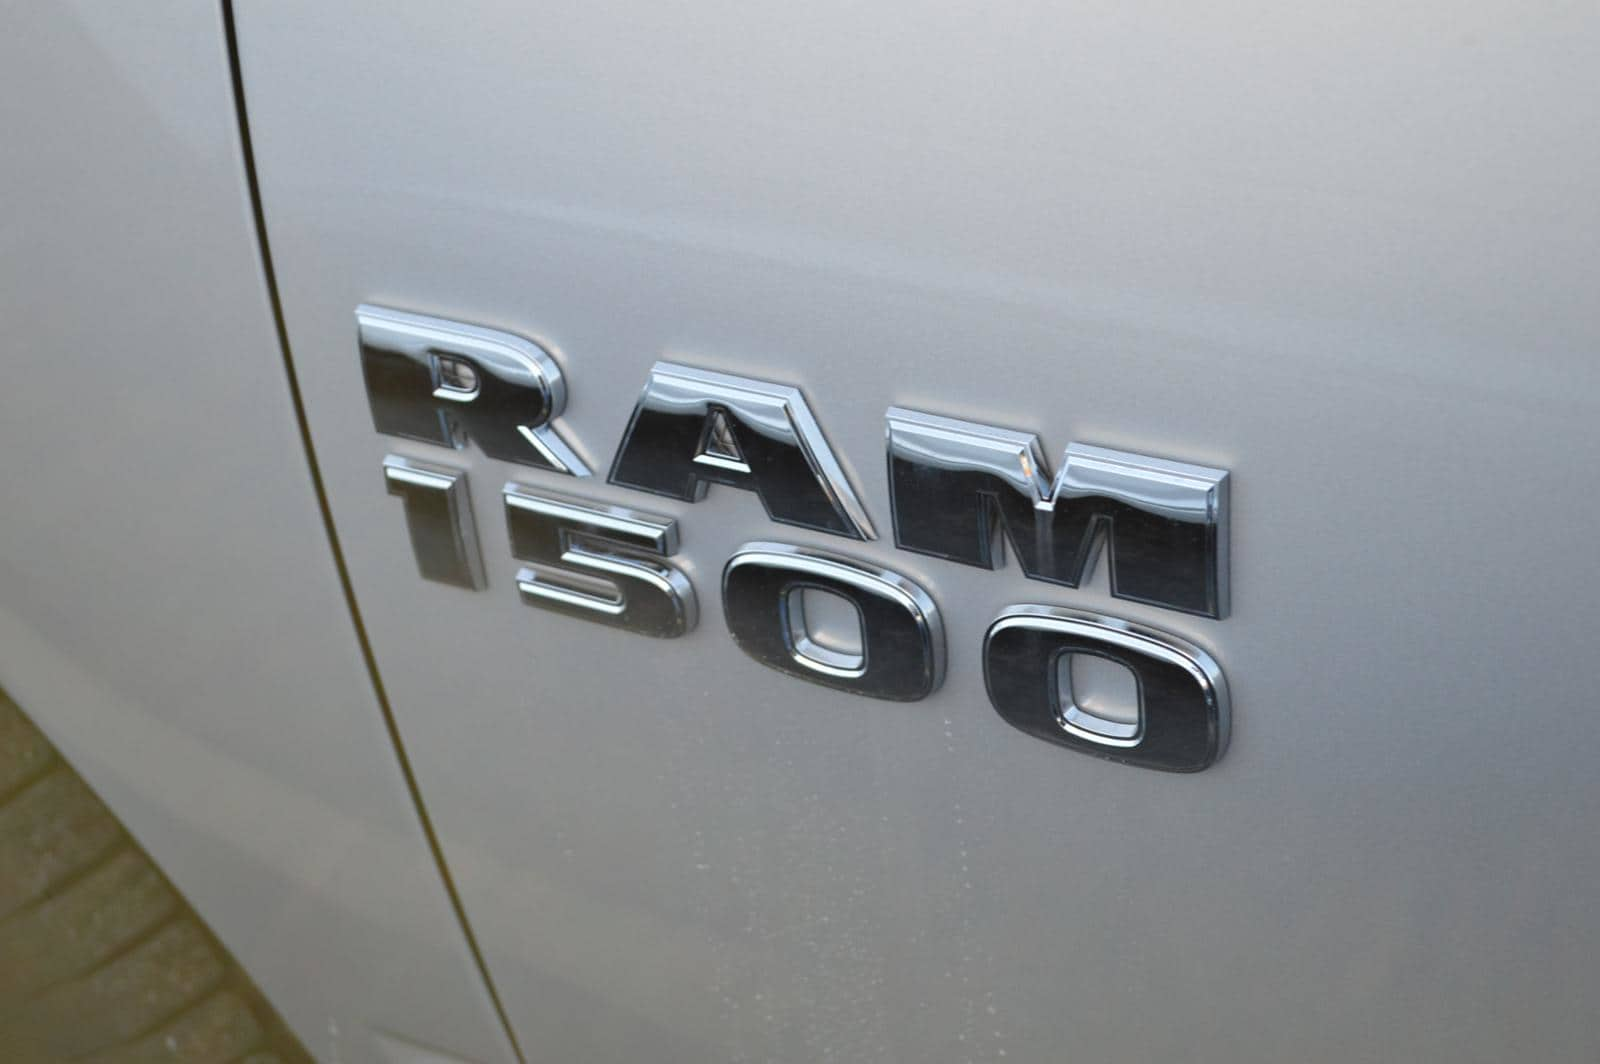 2018 Ram 1500 Regular Cab, Pickup #18141 - photo 4